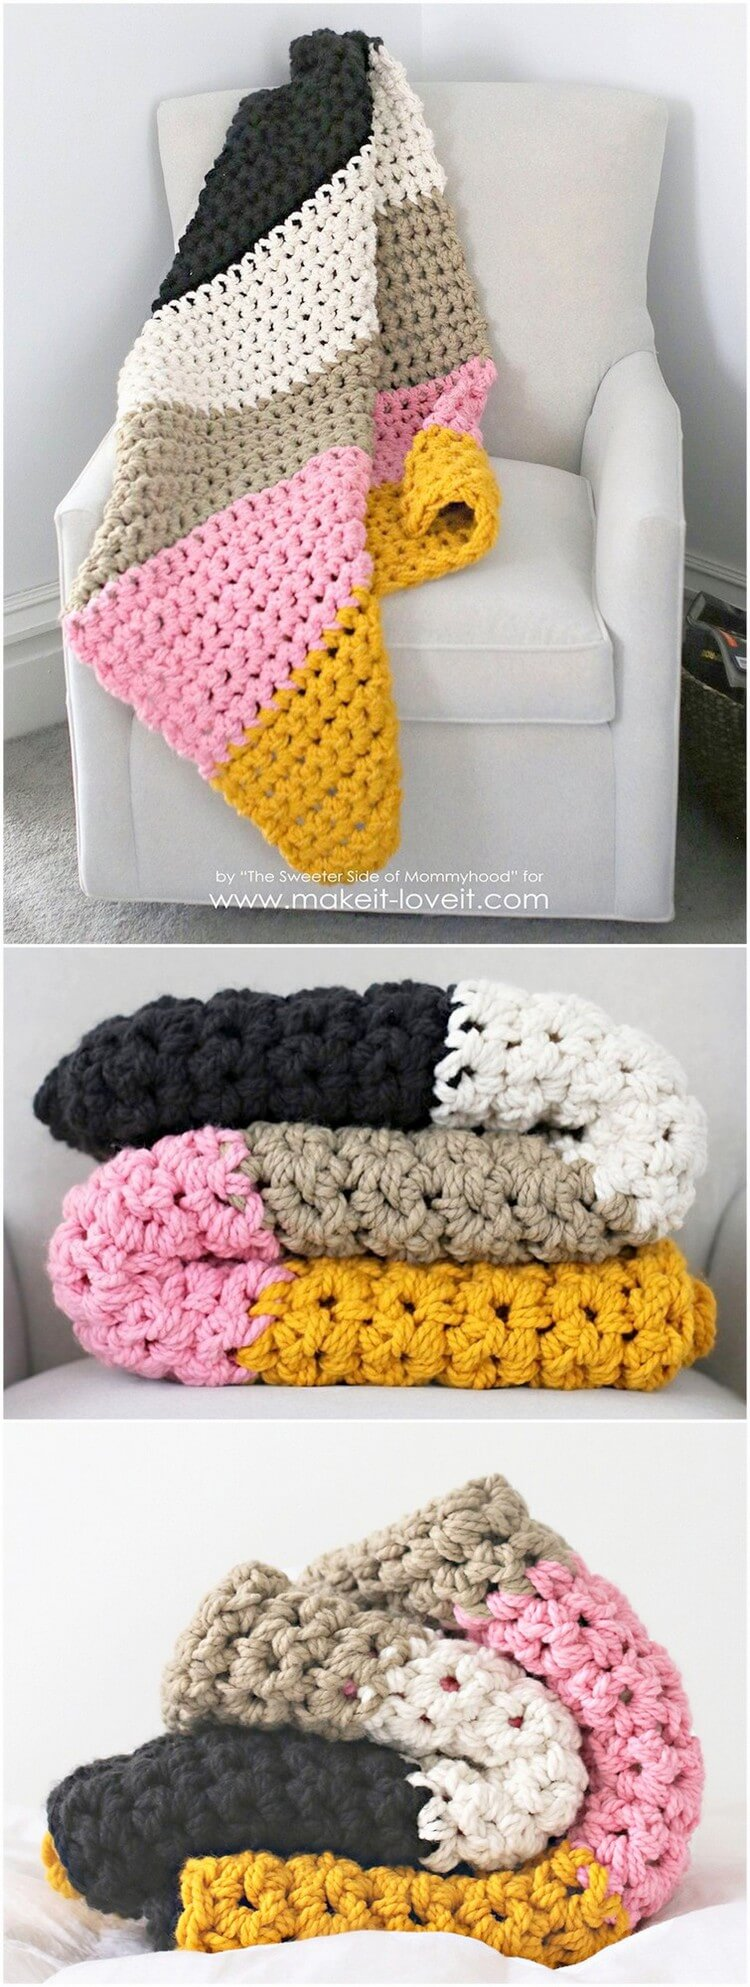 Crochet Blanket Pattern (6)